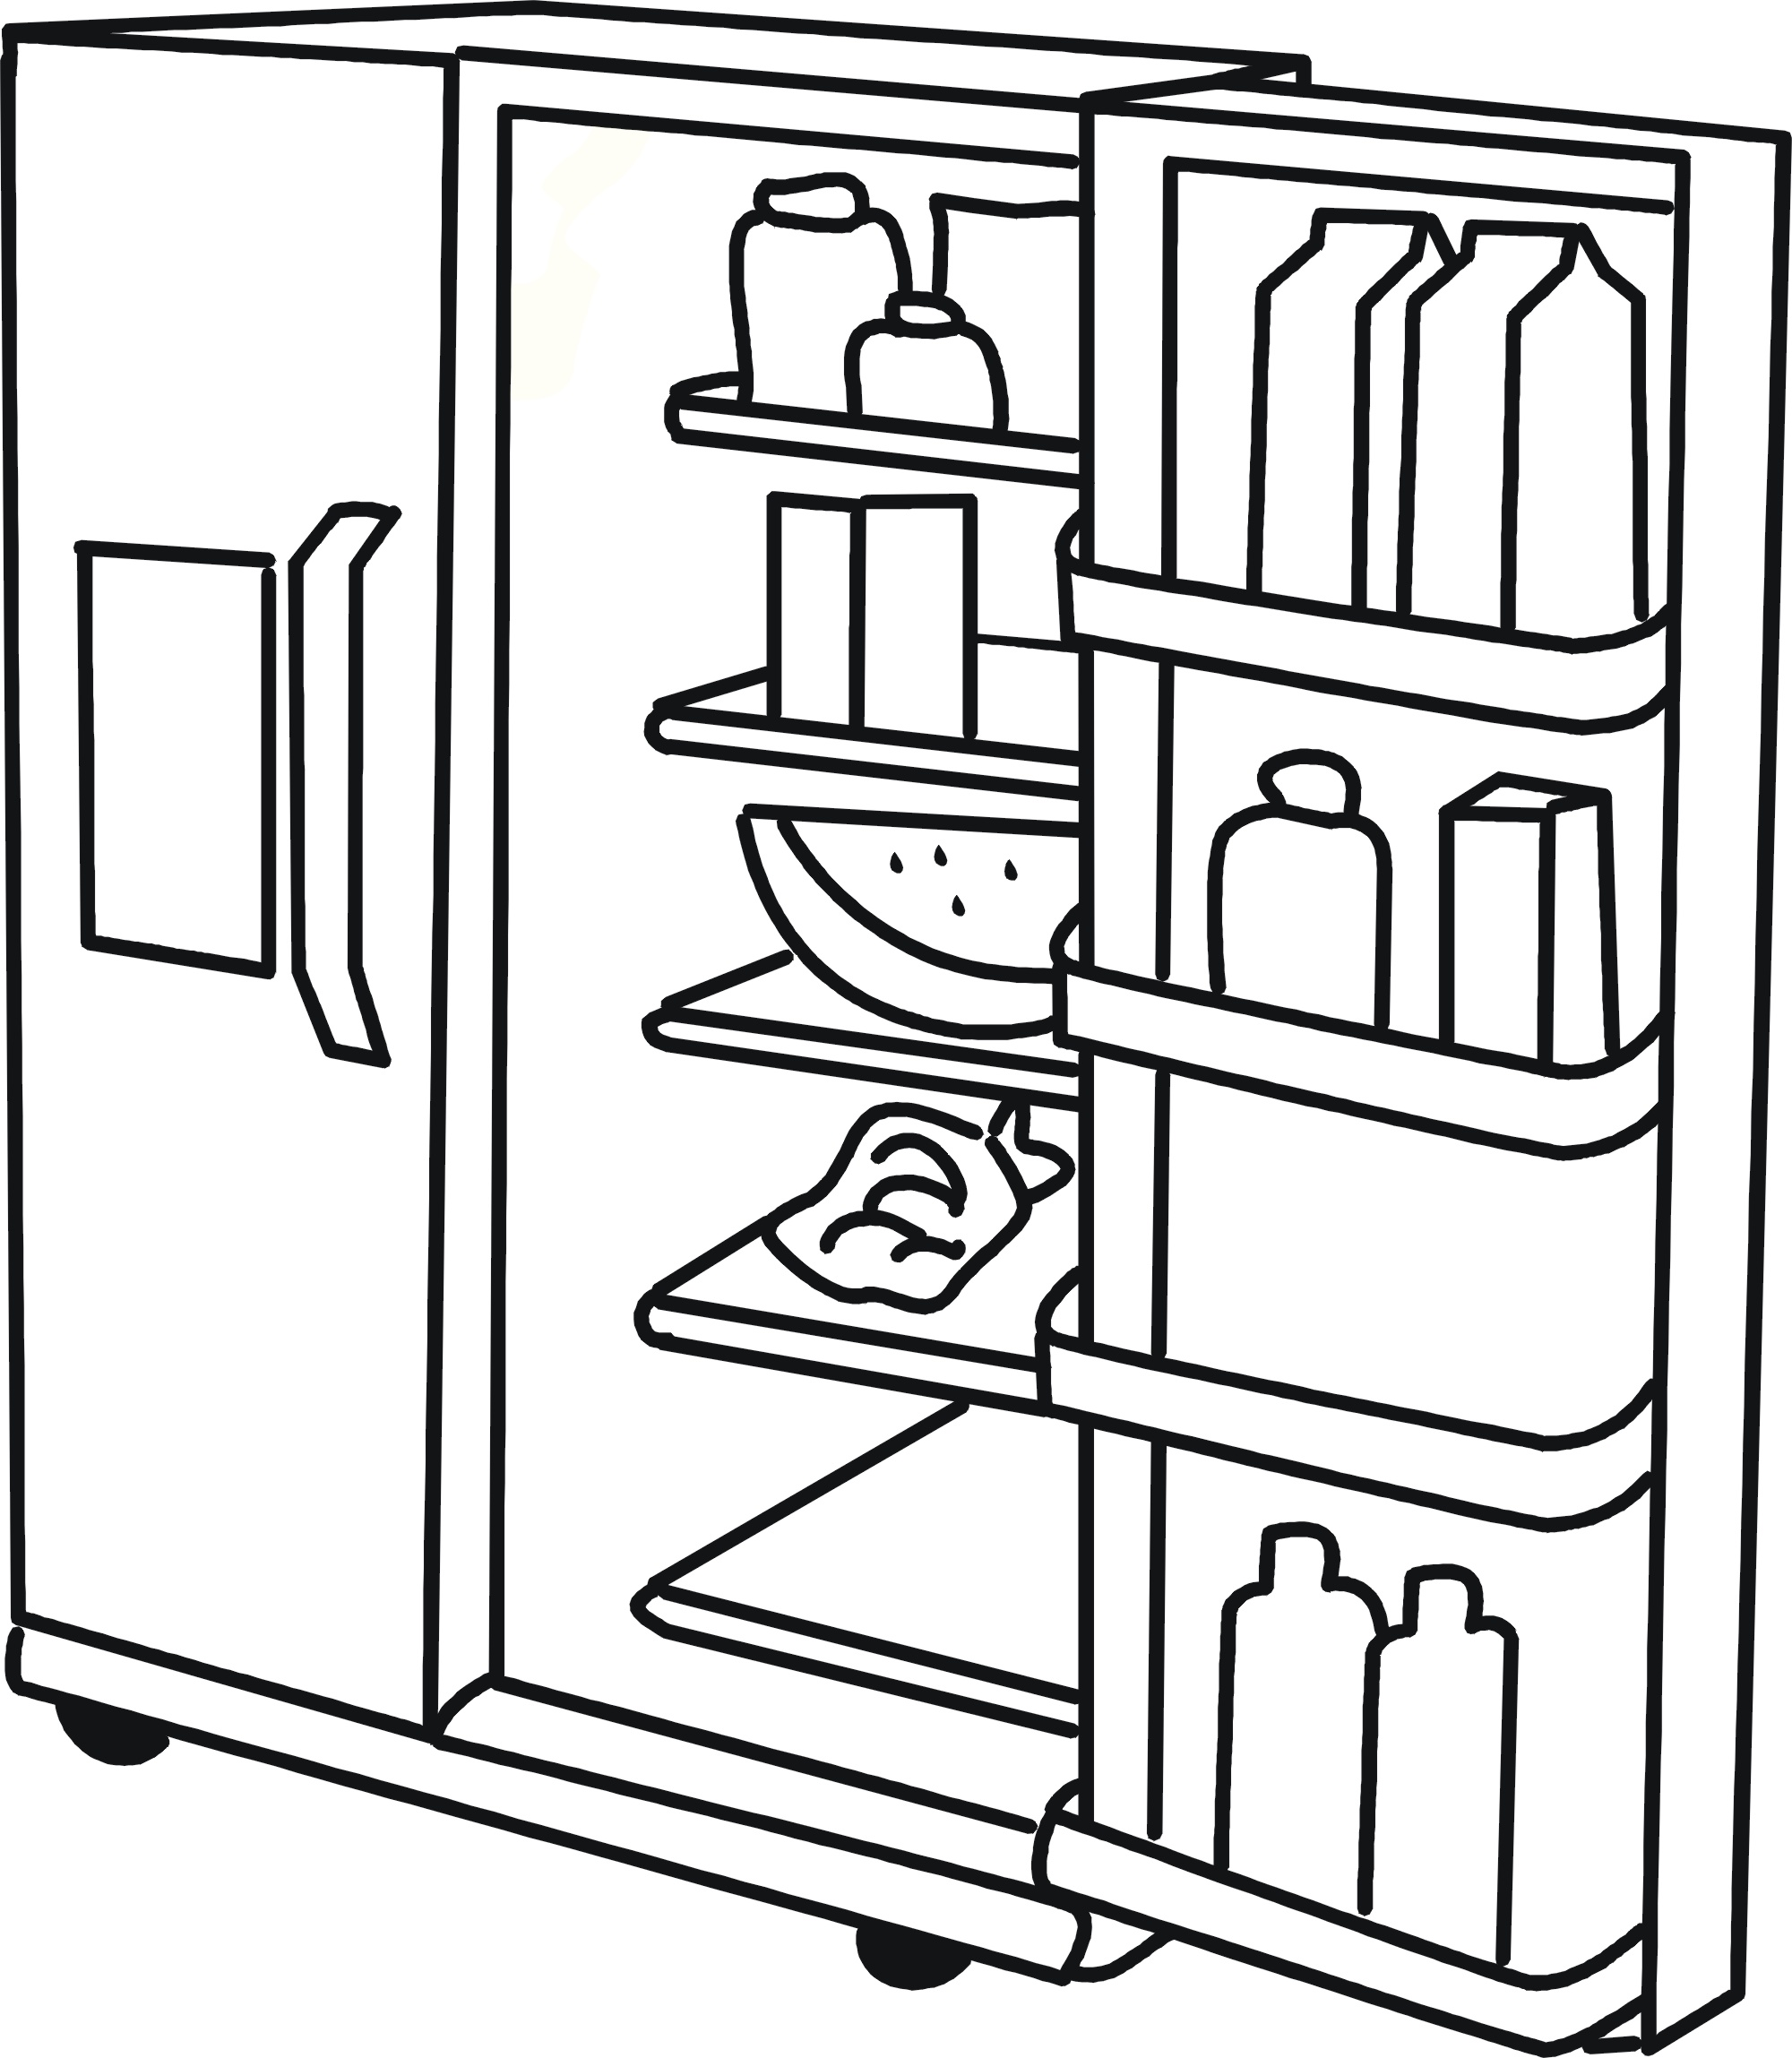 Refrigerator clipart coloring page. Fridge at getcolorings com